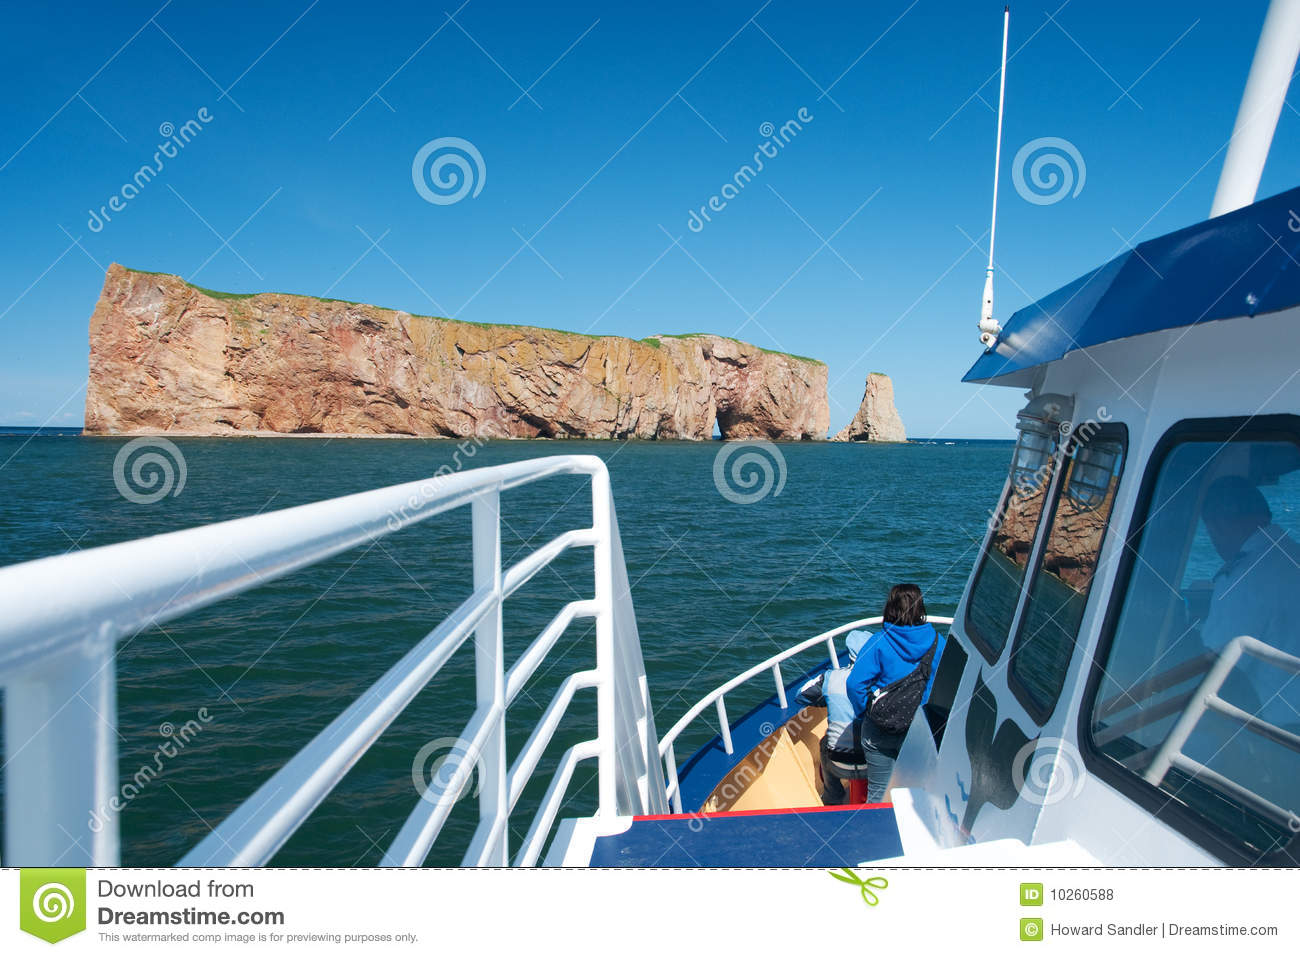 Perce Rock seen from a boat